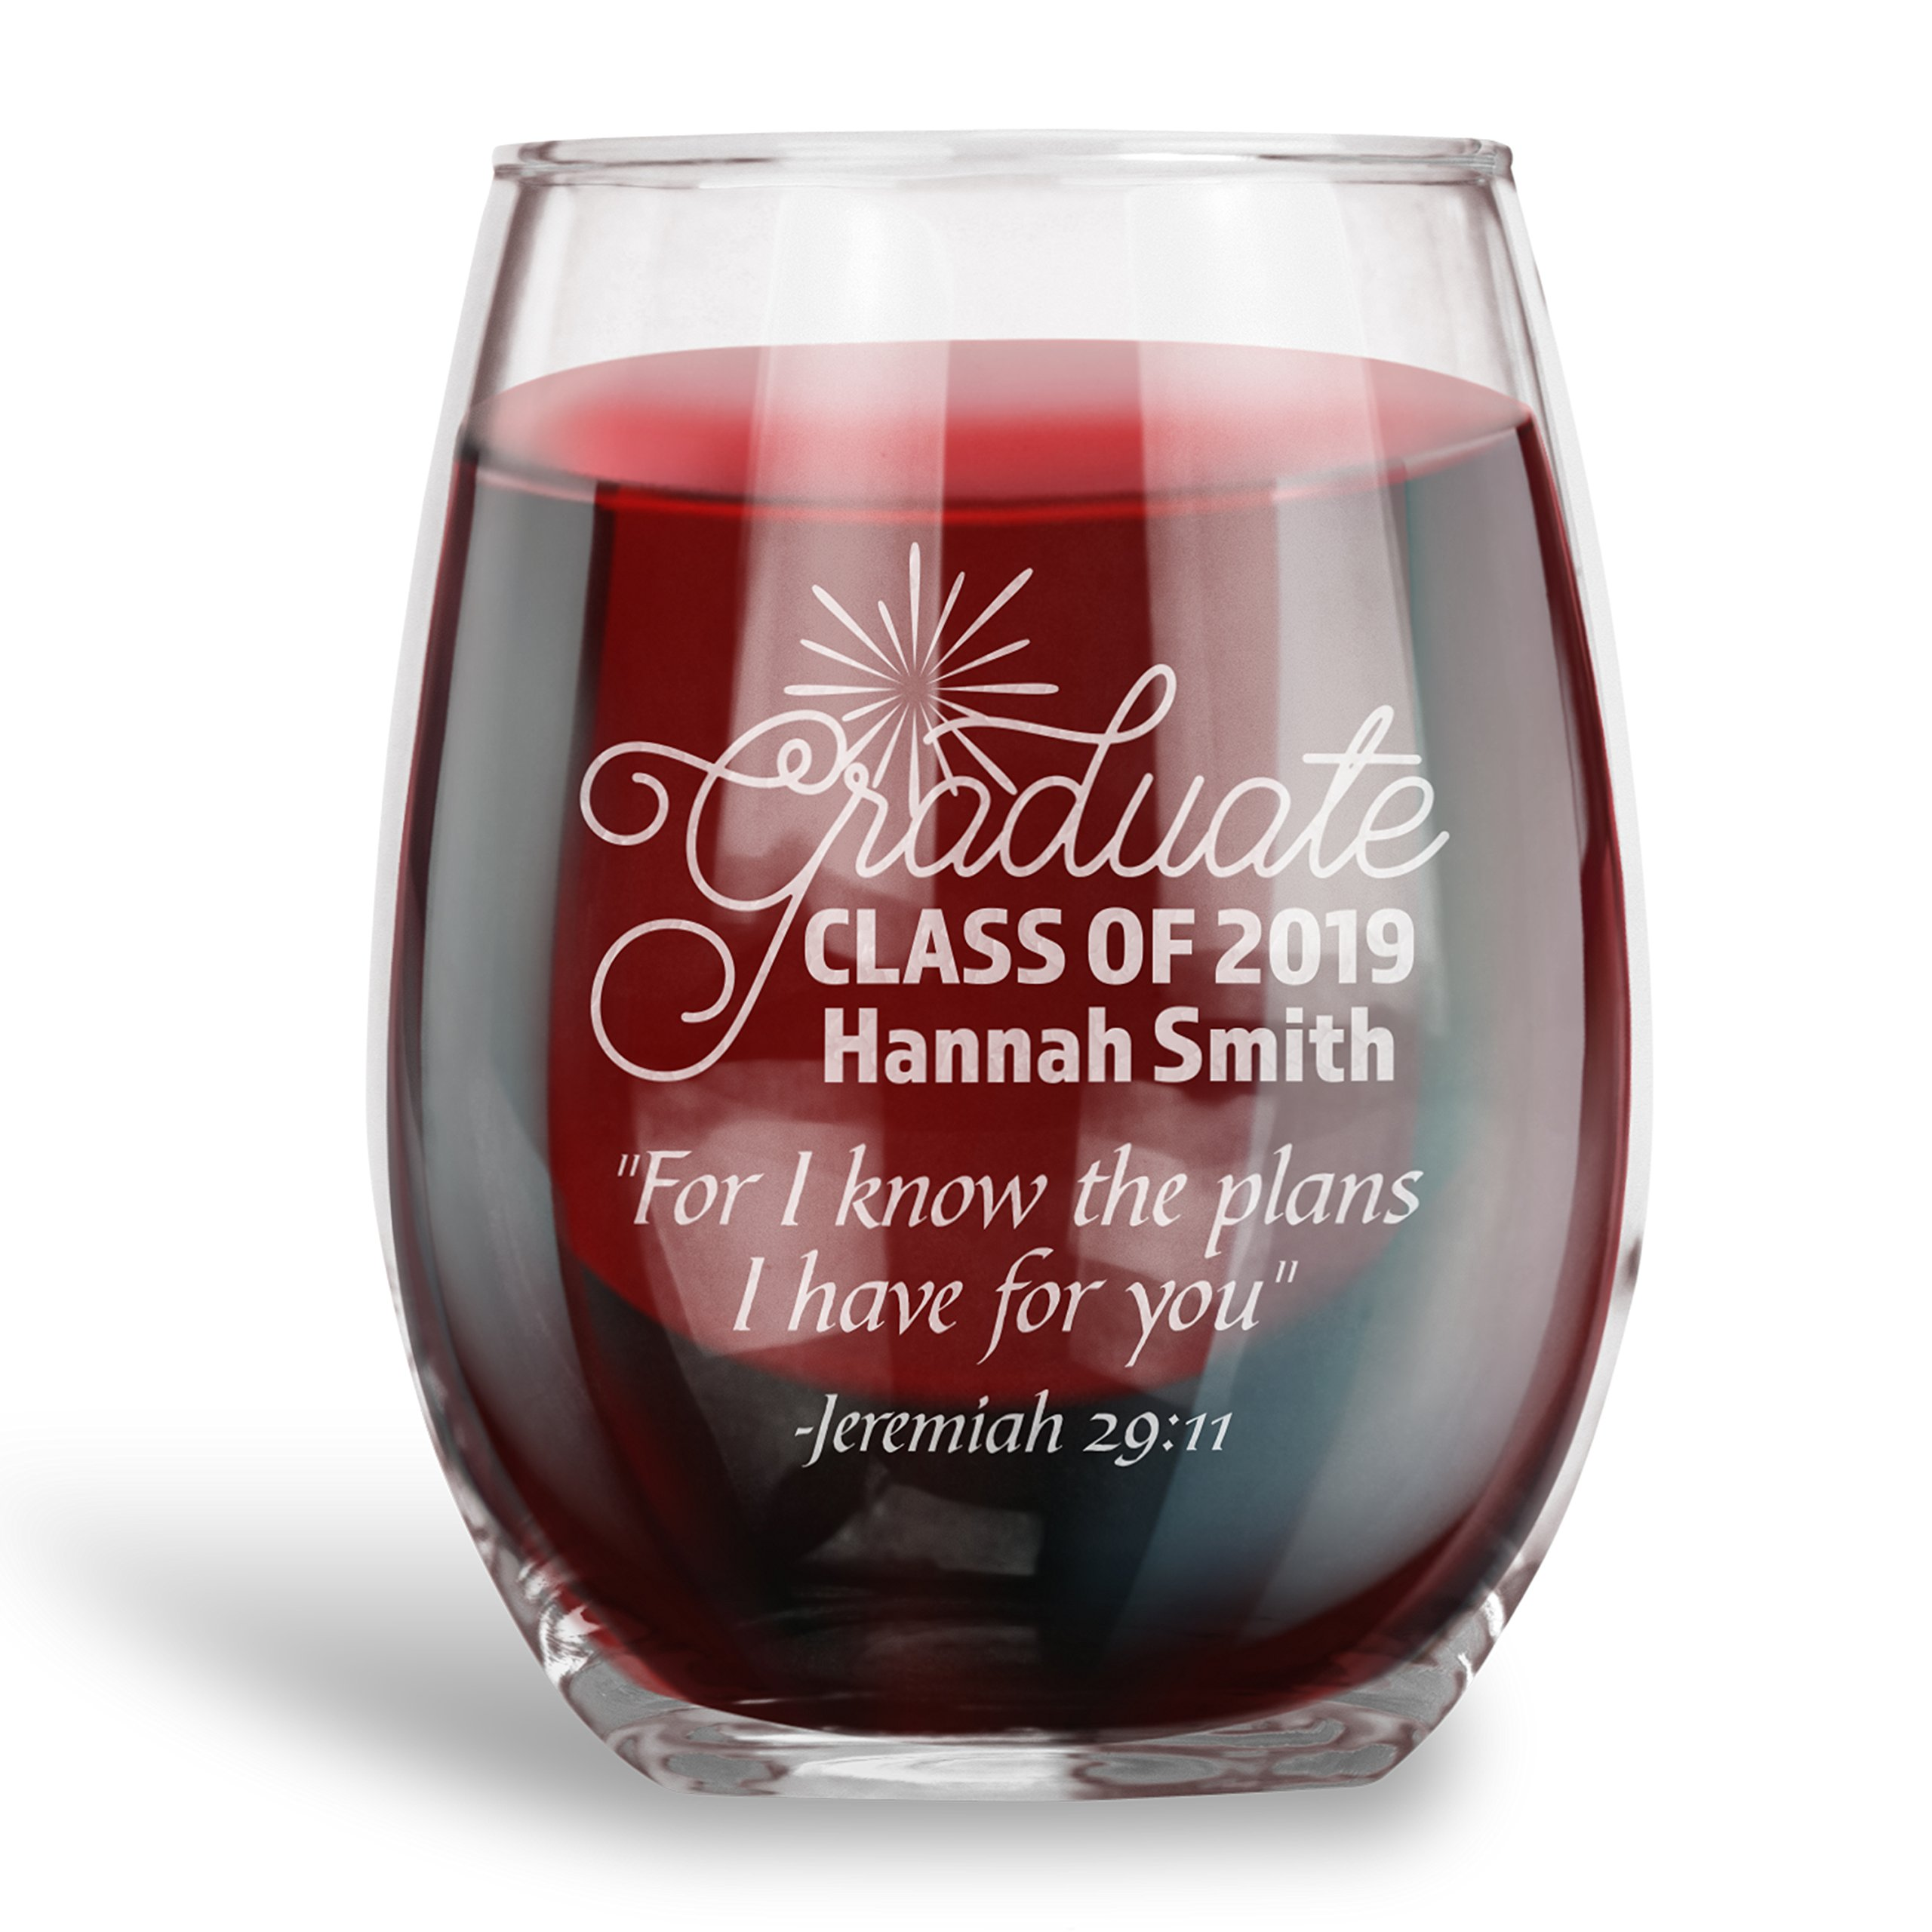 Graduation Gifts, Personalized 15 oz. Stemless Wine Glass |Jeremiah 29:11 |Engraved with your NAME and YEAR, Christian Gift Ideas by Personalization Lab